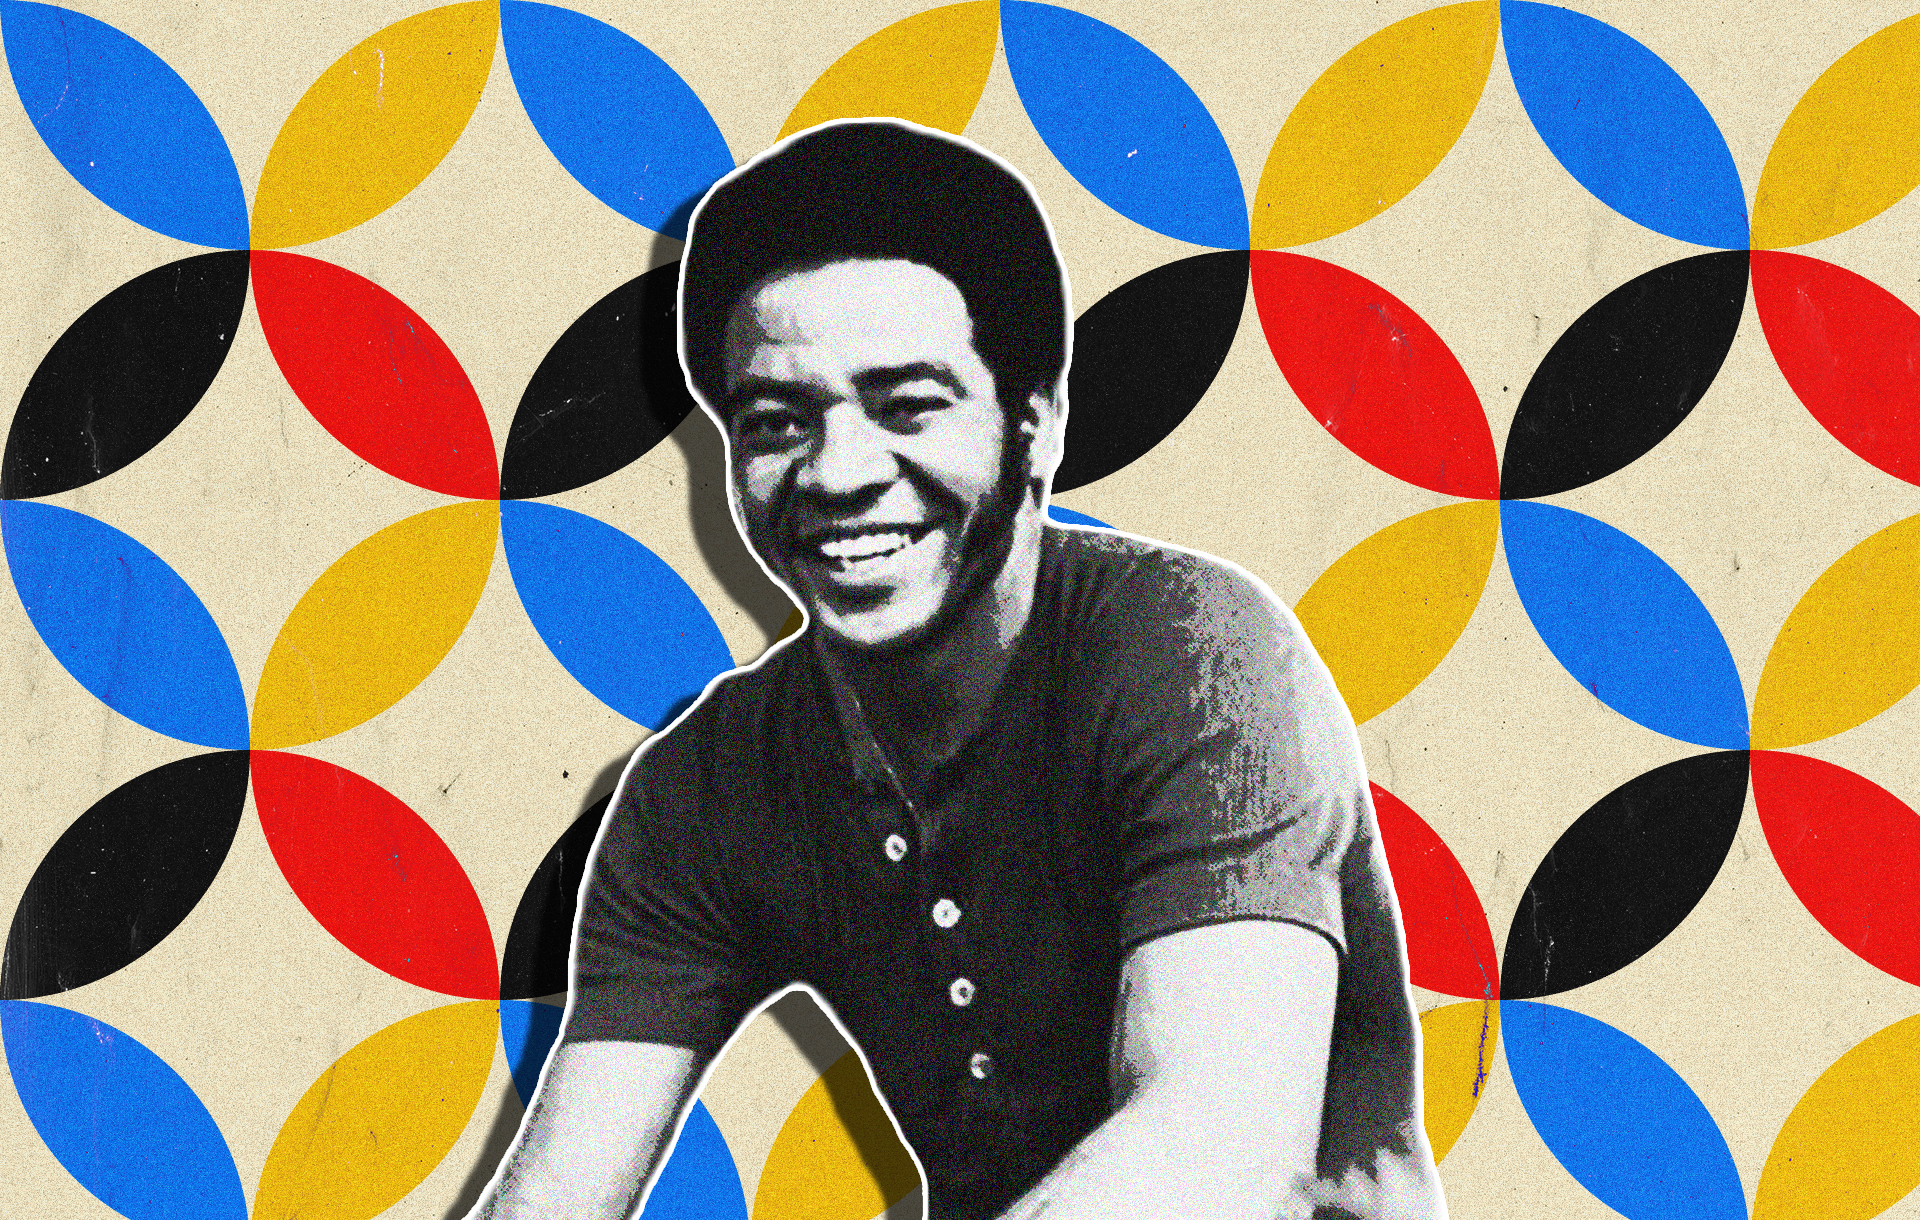 Bill Withers - The Lasting Impact Of One Of Music's Most Unlikely Stars